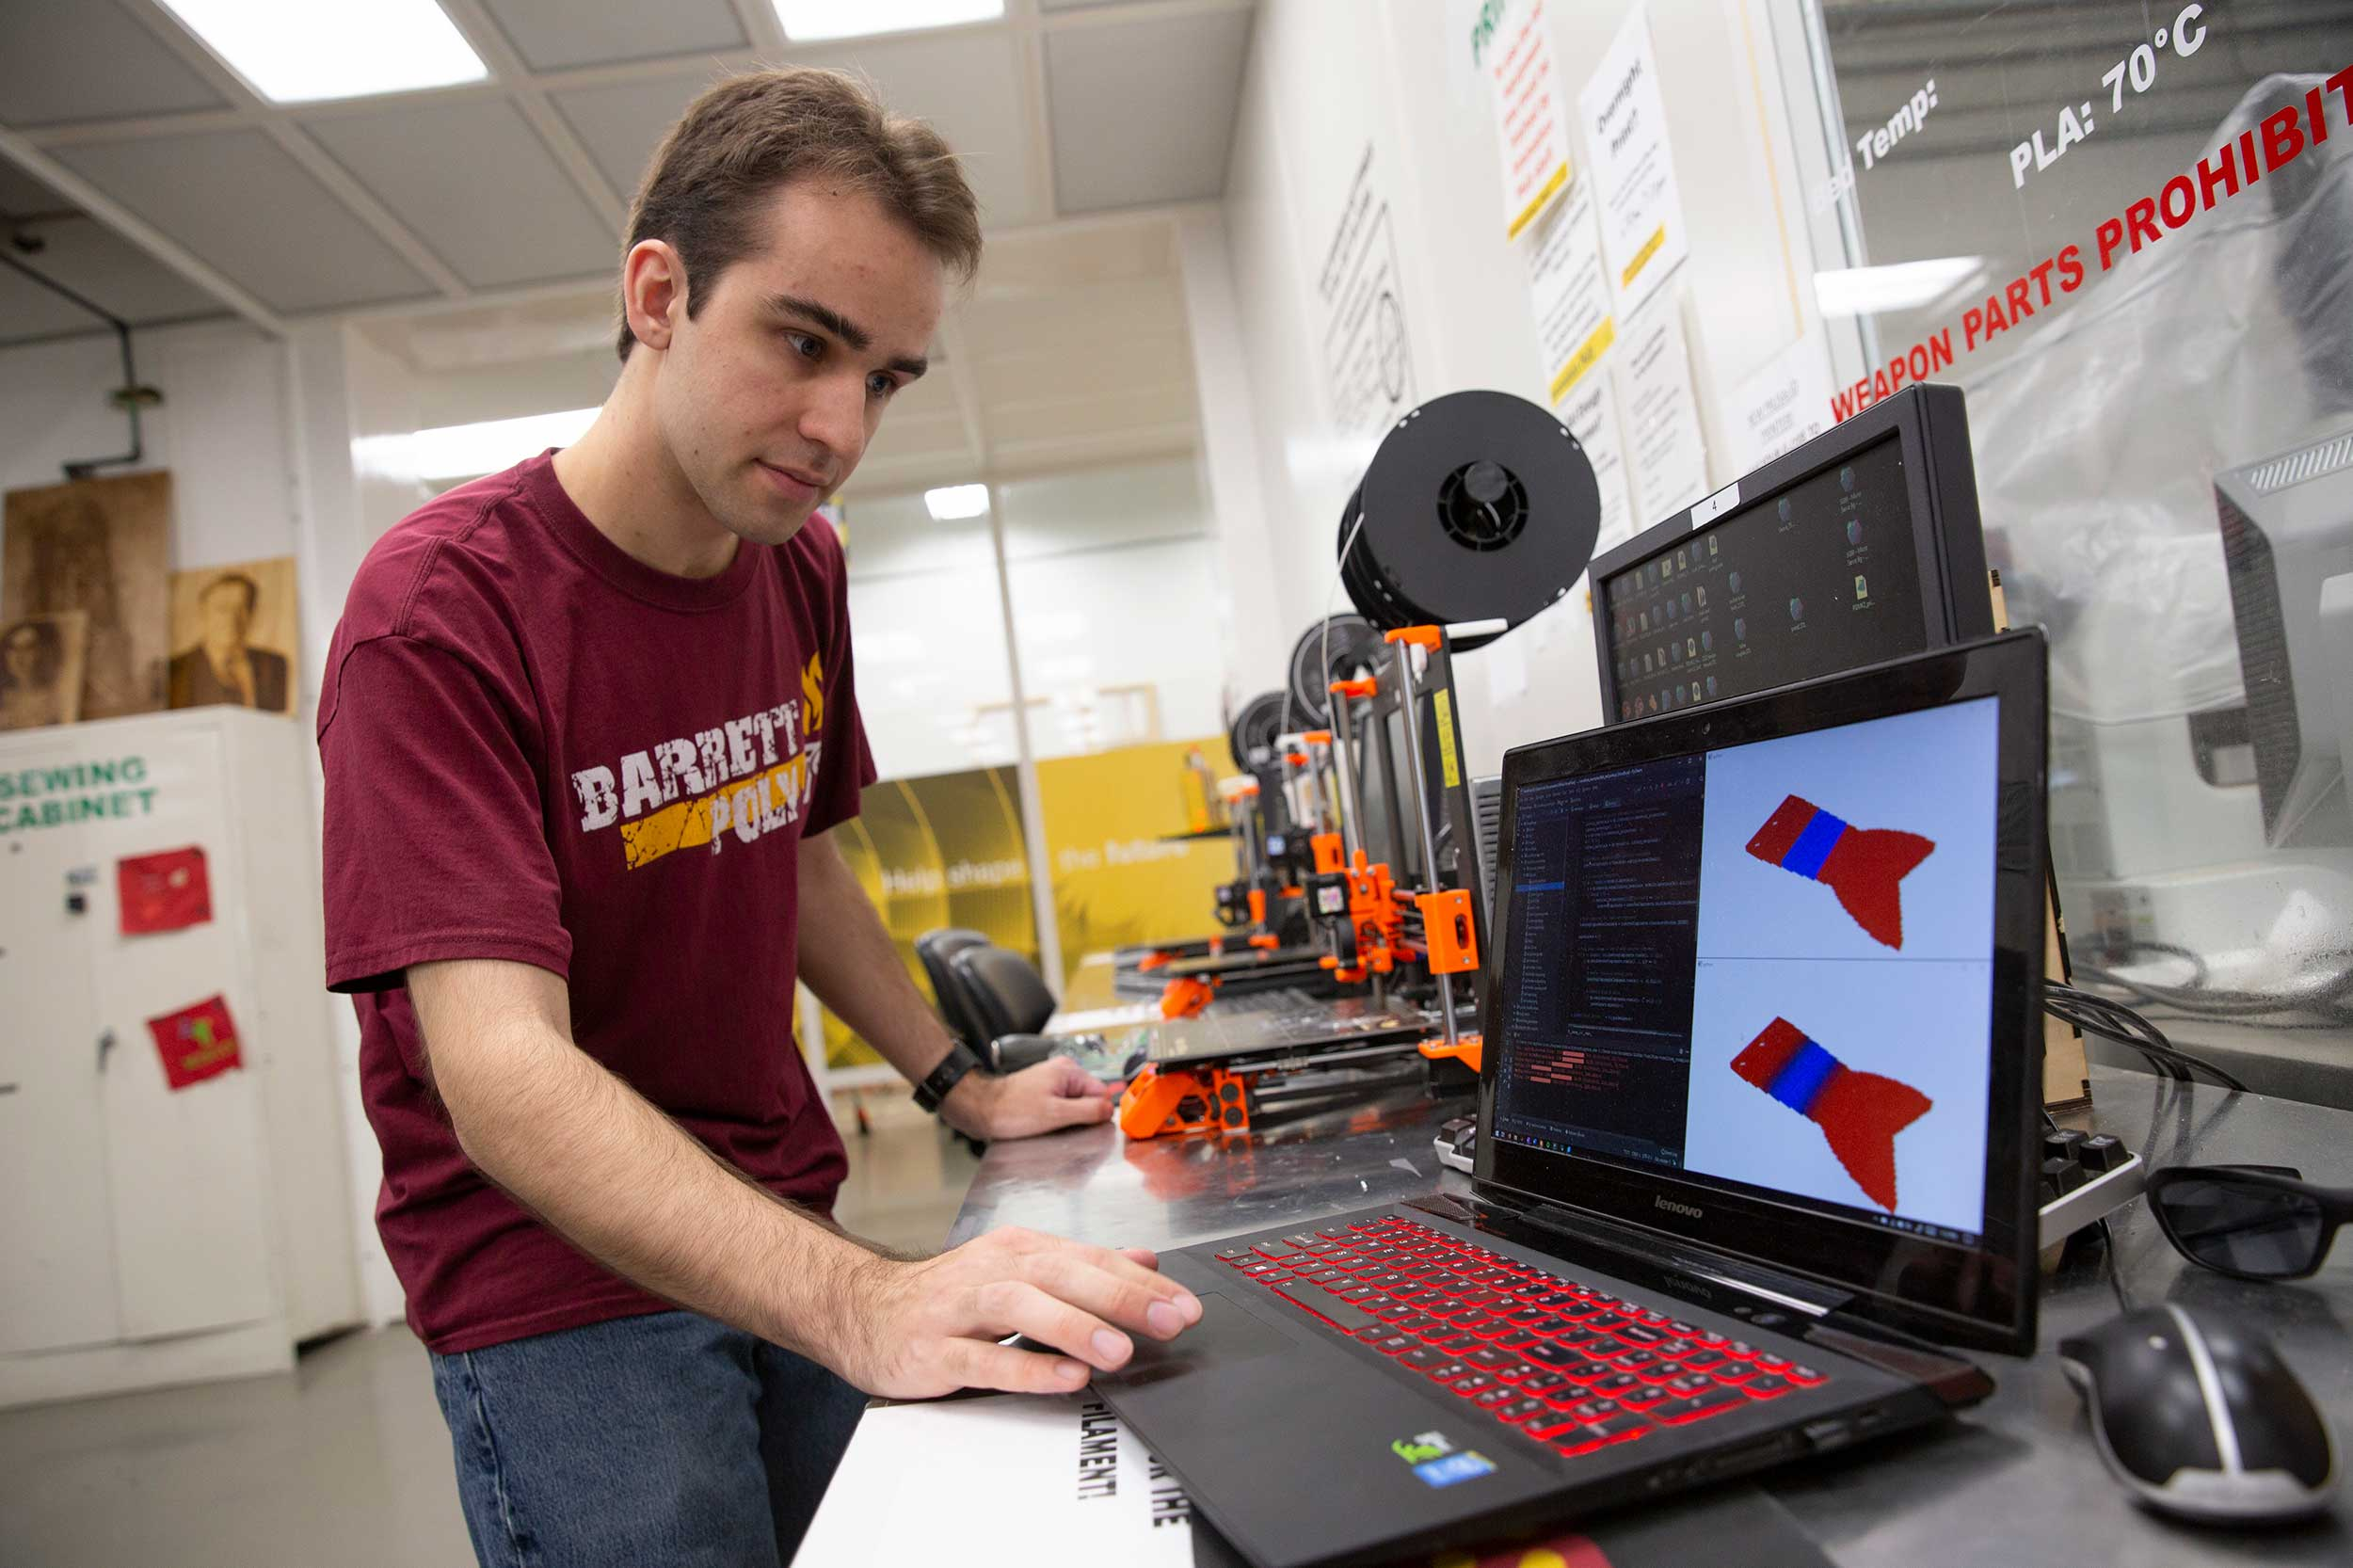 An ASU Engineering student works on a project a lab